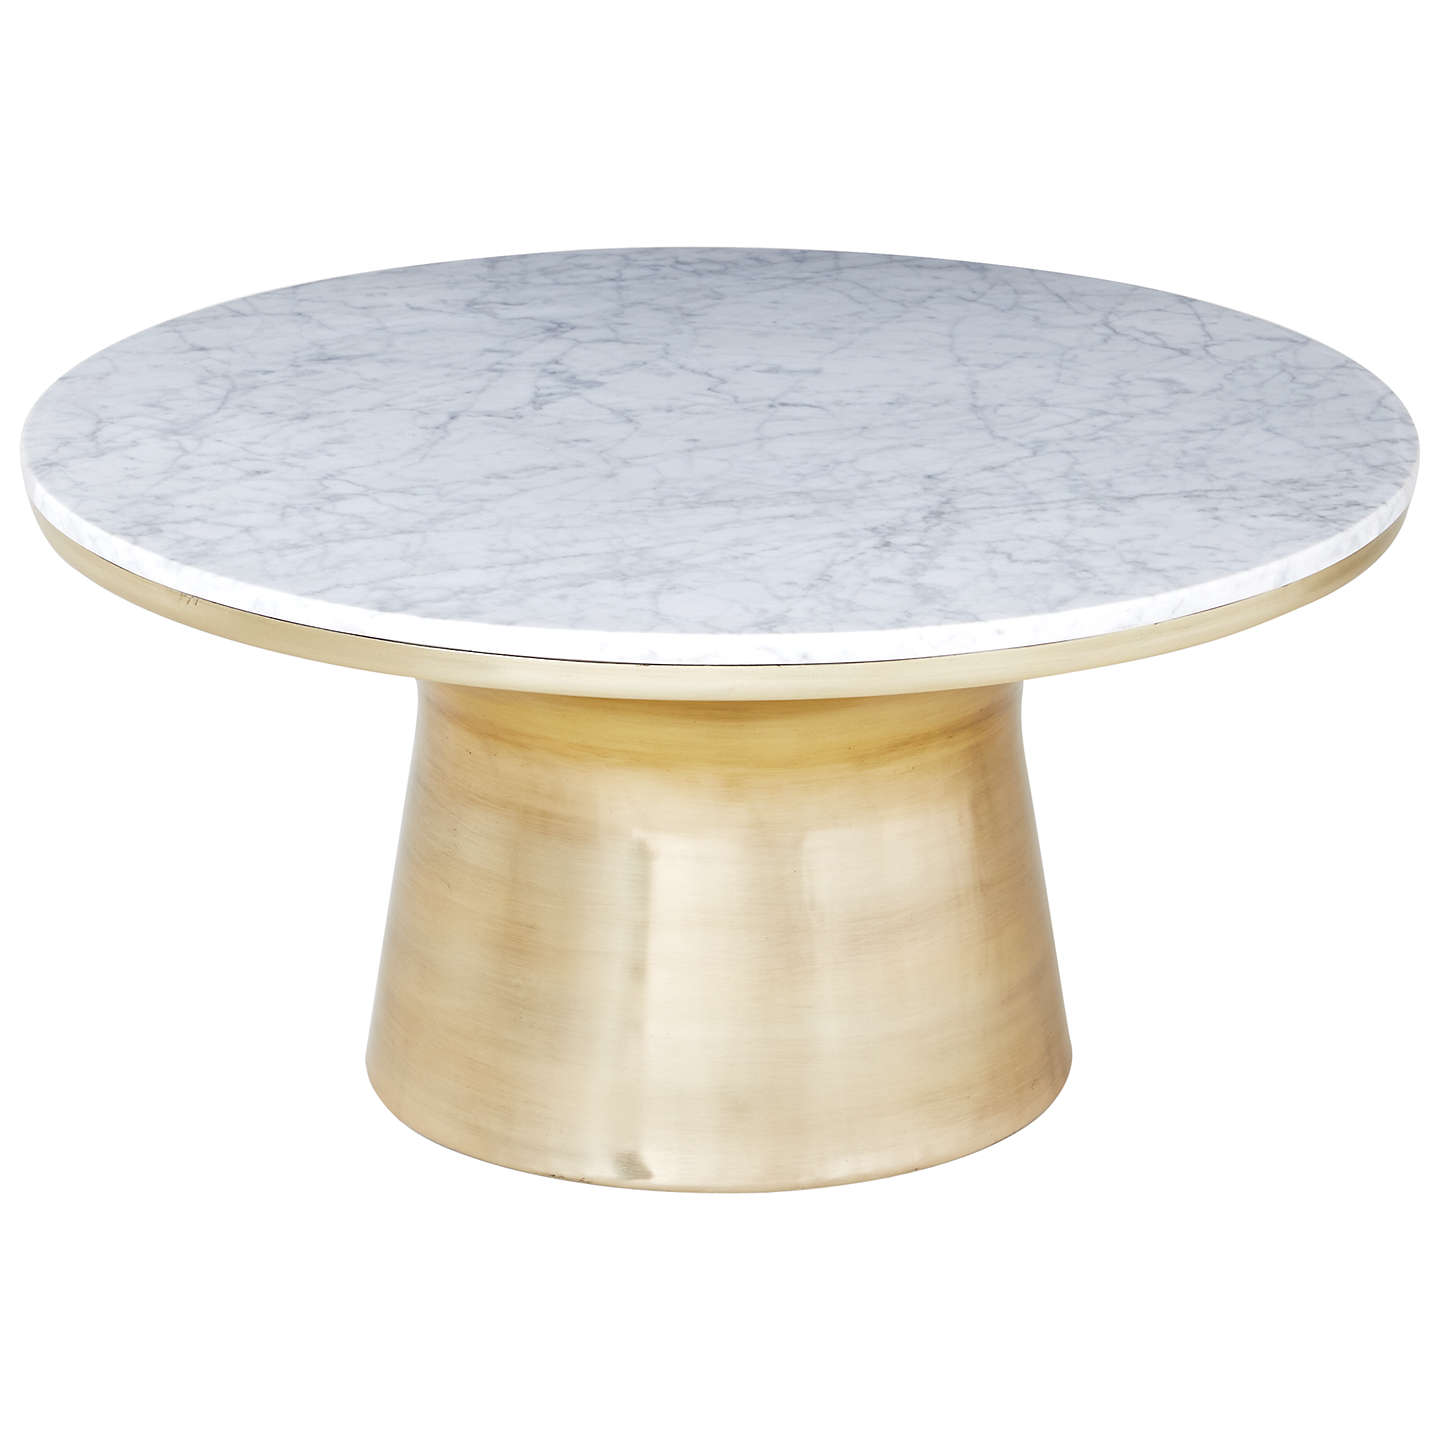 table tables tenon old shown base pine angeles los marble round natural custom pedestal with top zinc raw products handmade dining mortise